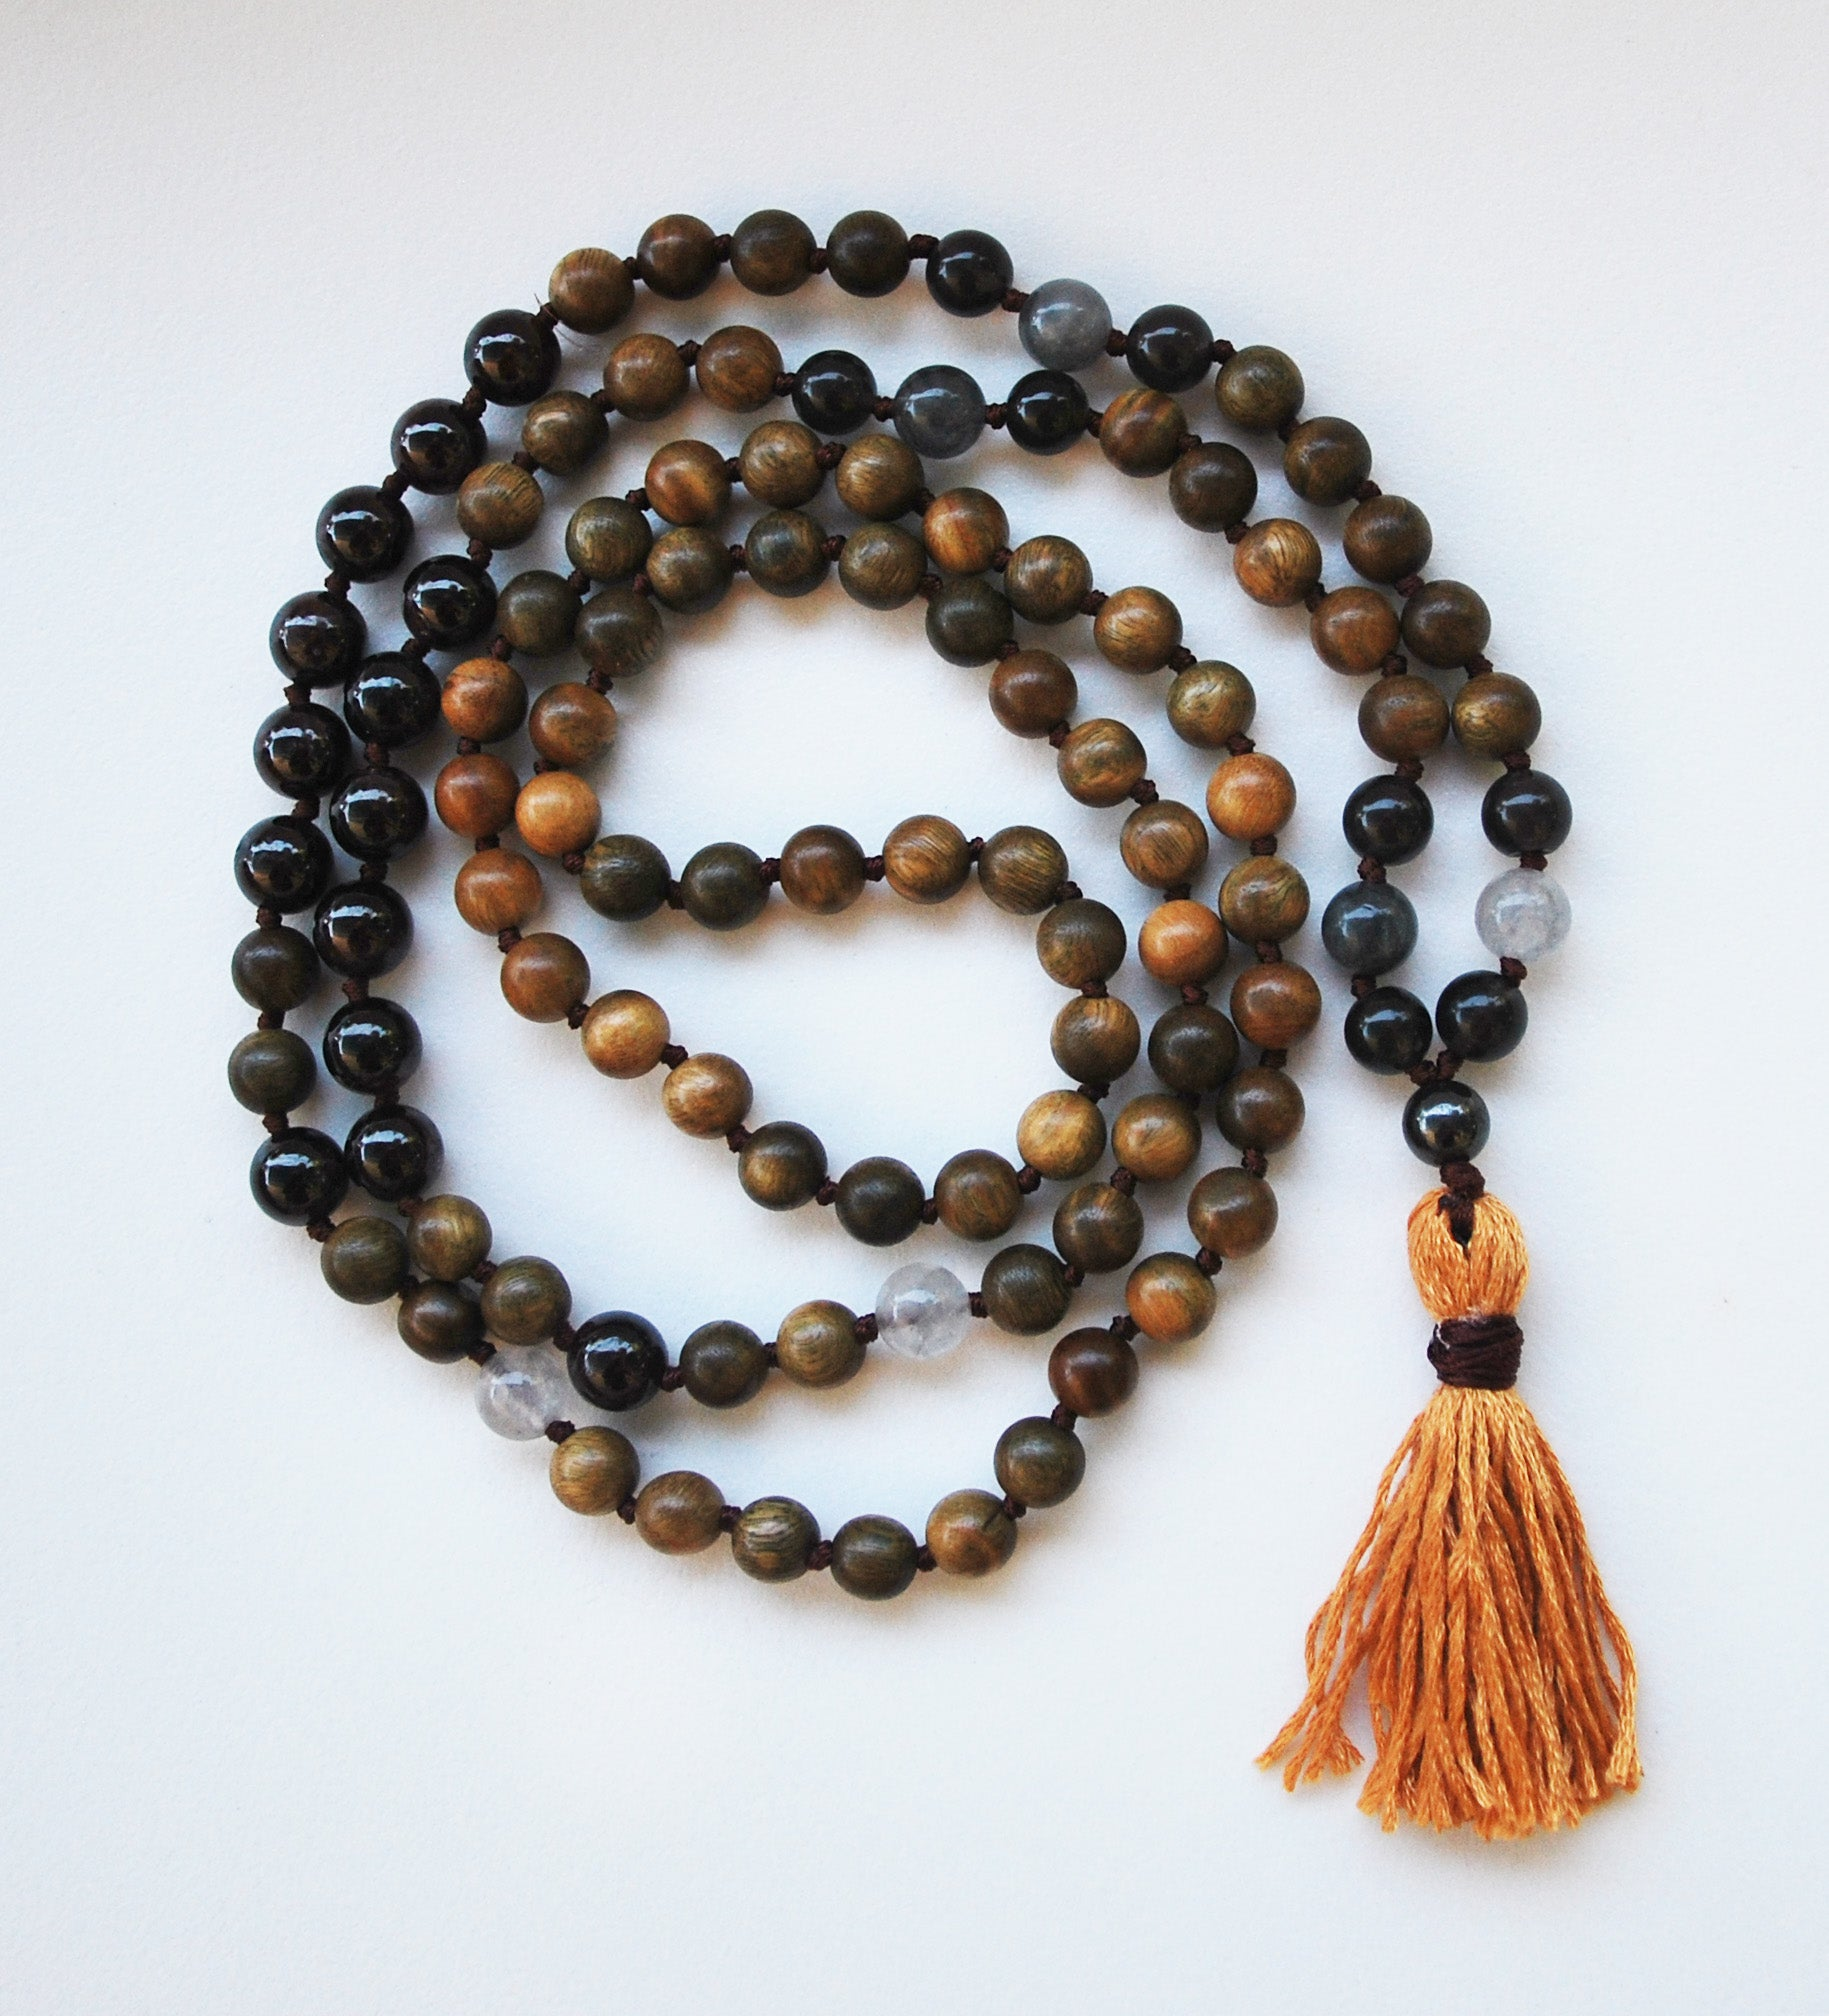 8mm Green Sandalwood & Garnet 108 Knotted Mala Necklace with Cotton Tassel